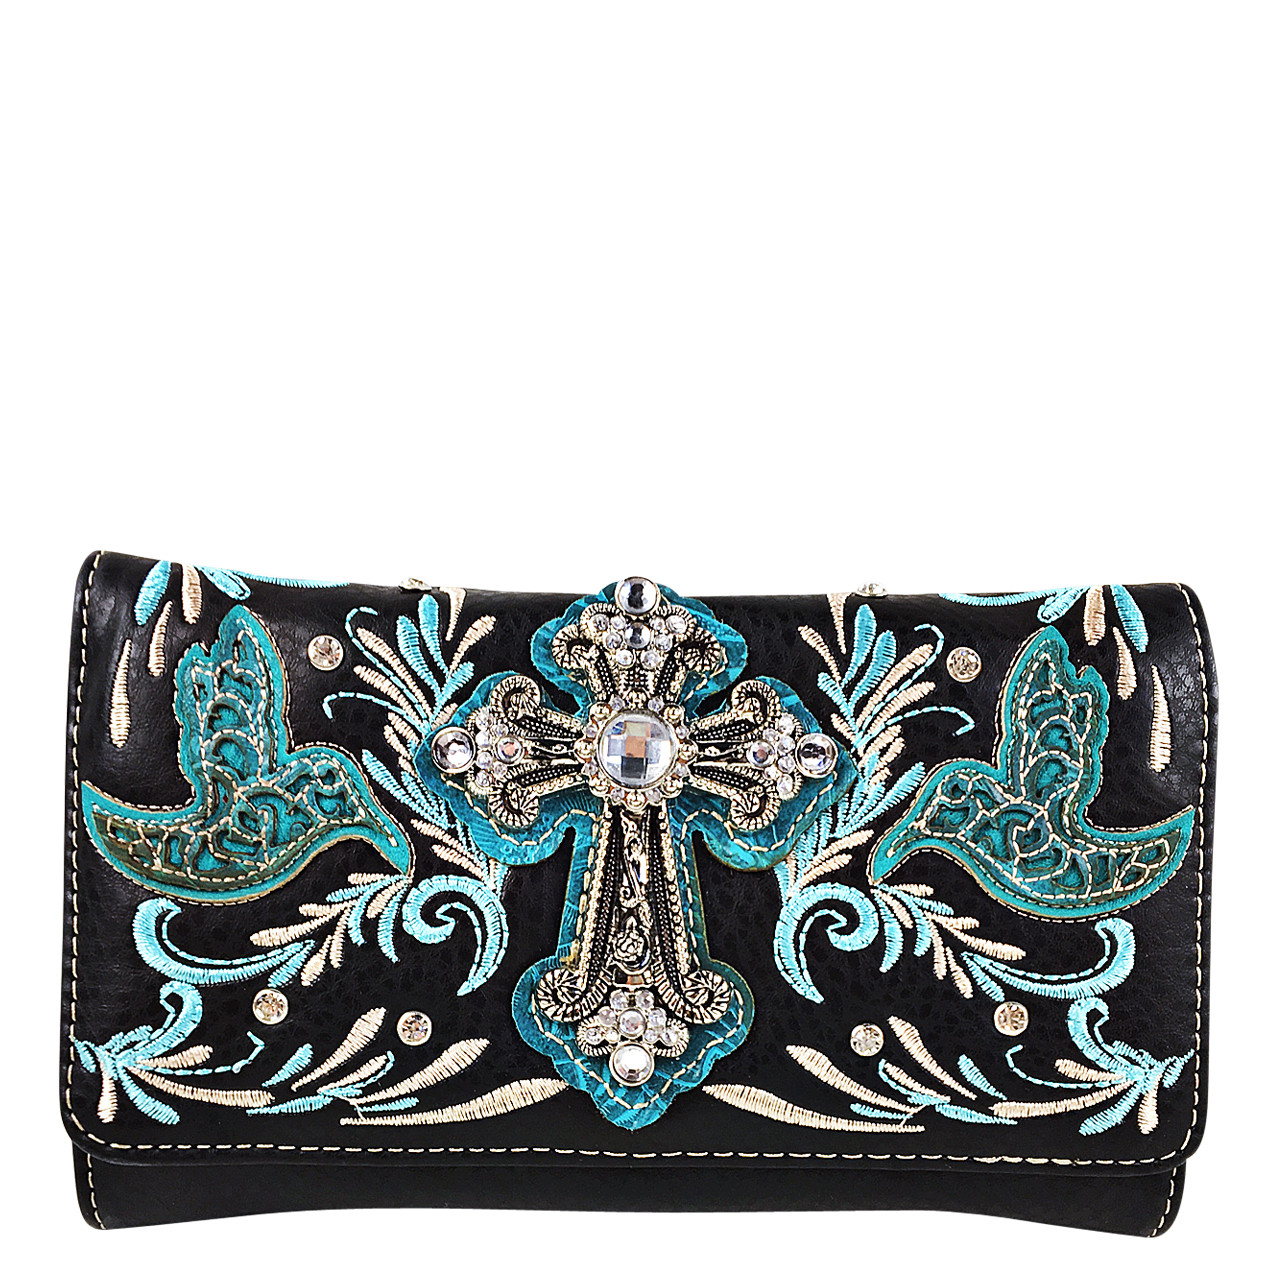 TURQUOISE STUDDED RHINESTONE CROSS WITH STITCHED LOOK CLUTCH TRIFOLD WALLET